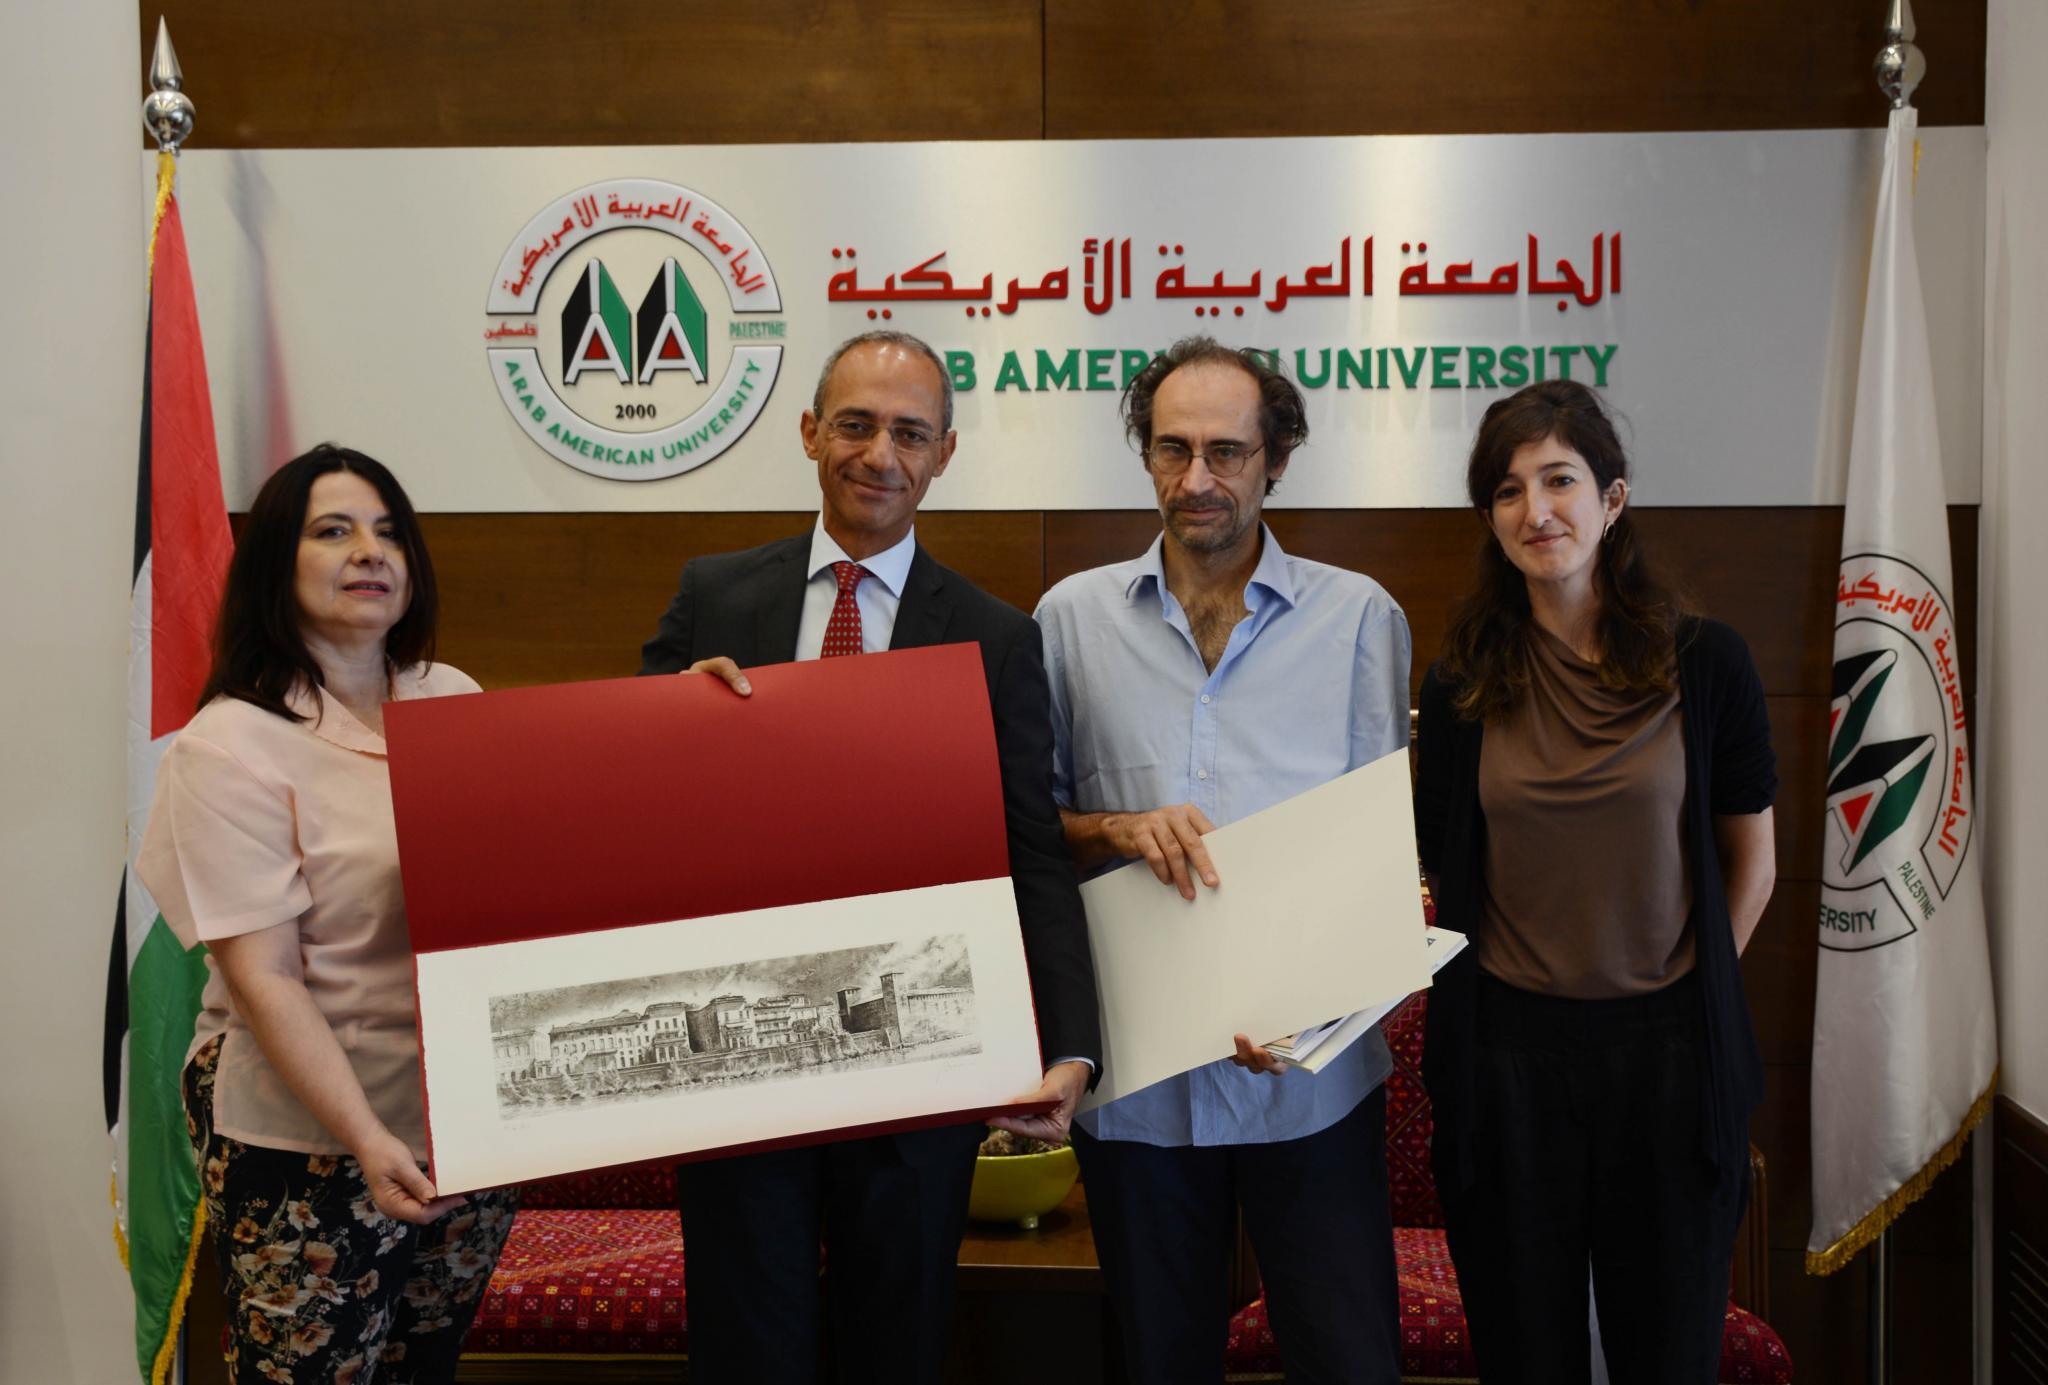 AAUP Announces the Launch the Bachelor Program in Interior Architecture With the Presence of the Italian Consul and a Delegation From the Academy of Fine Arts Verona